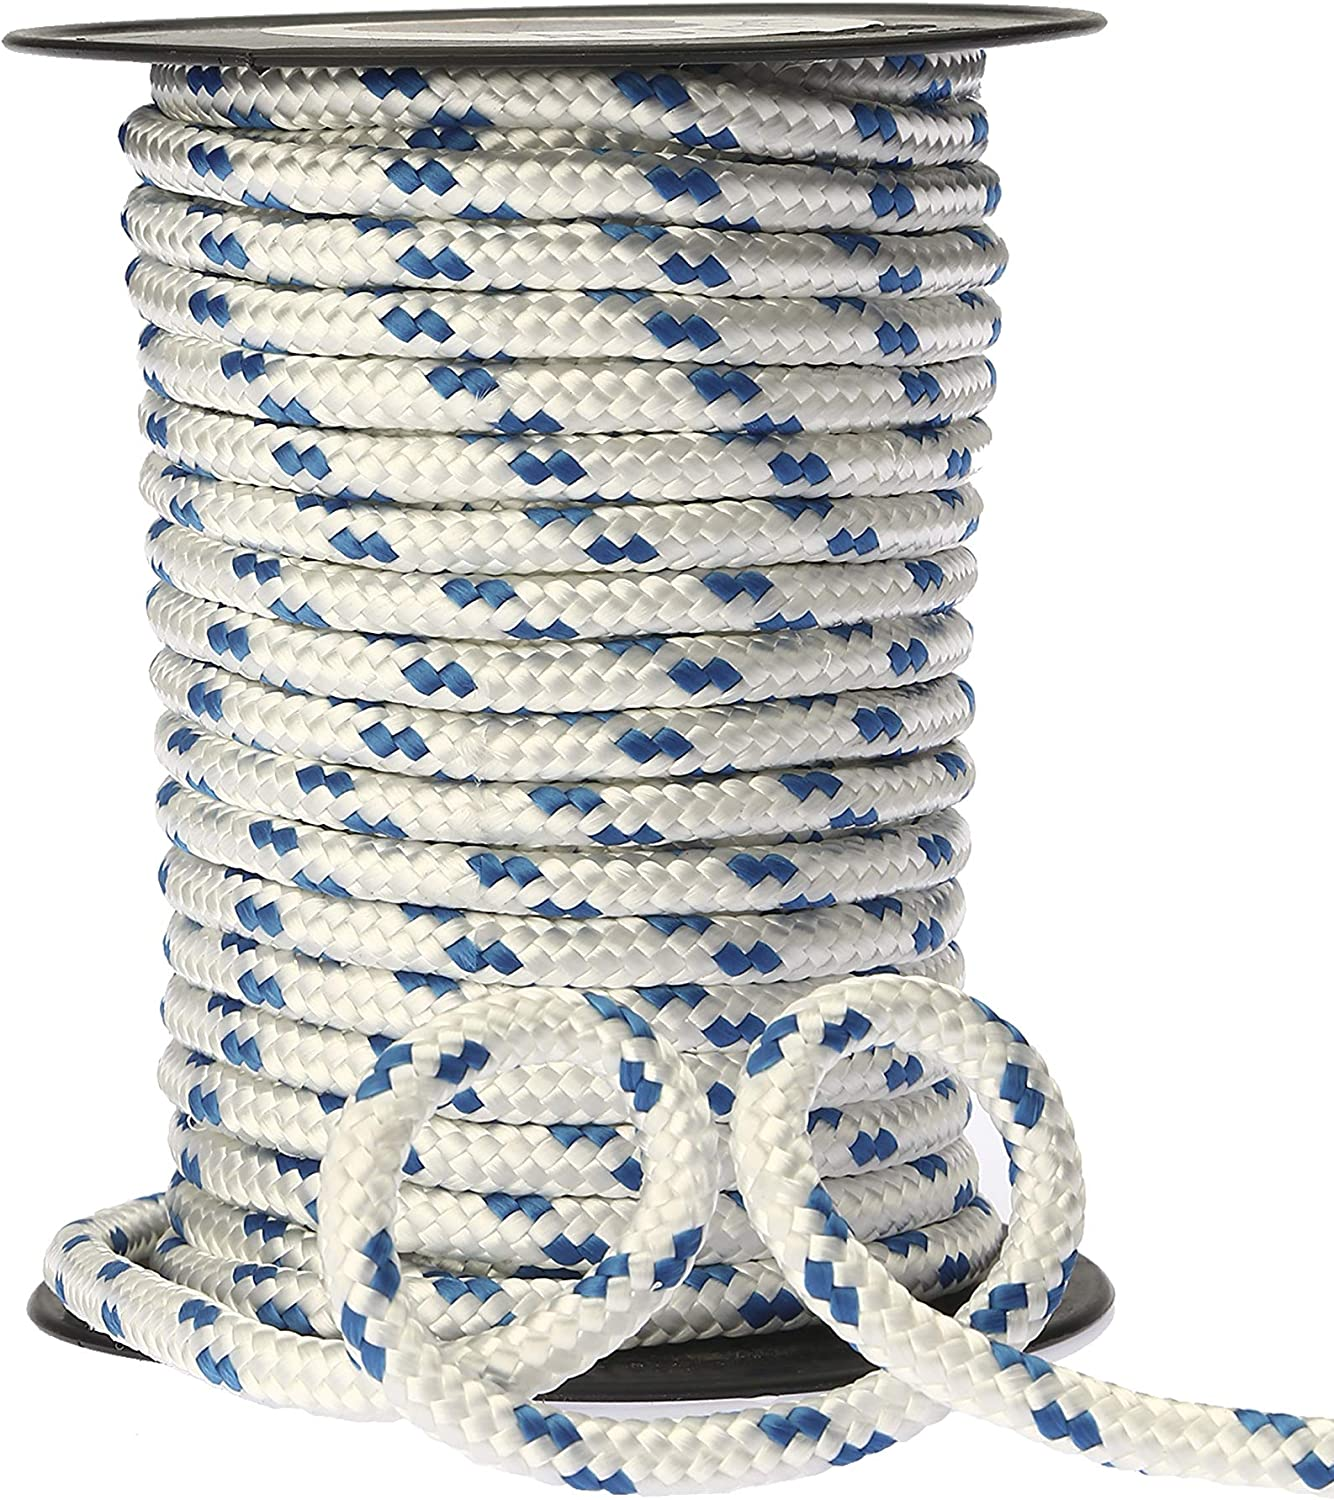 Multi-Purpose Rope Made in Turkey Nylon Rope 12MM Crafting Sailing 1//2 45ft KALYON Single Braided Polyester Rope Camping Rope